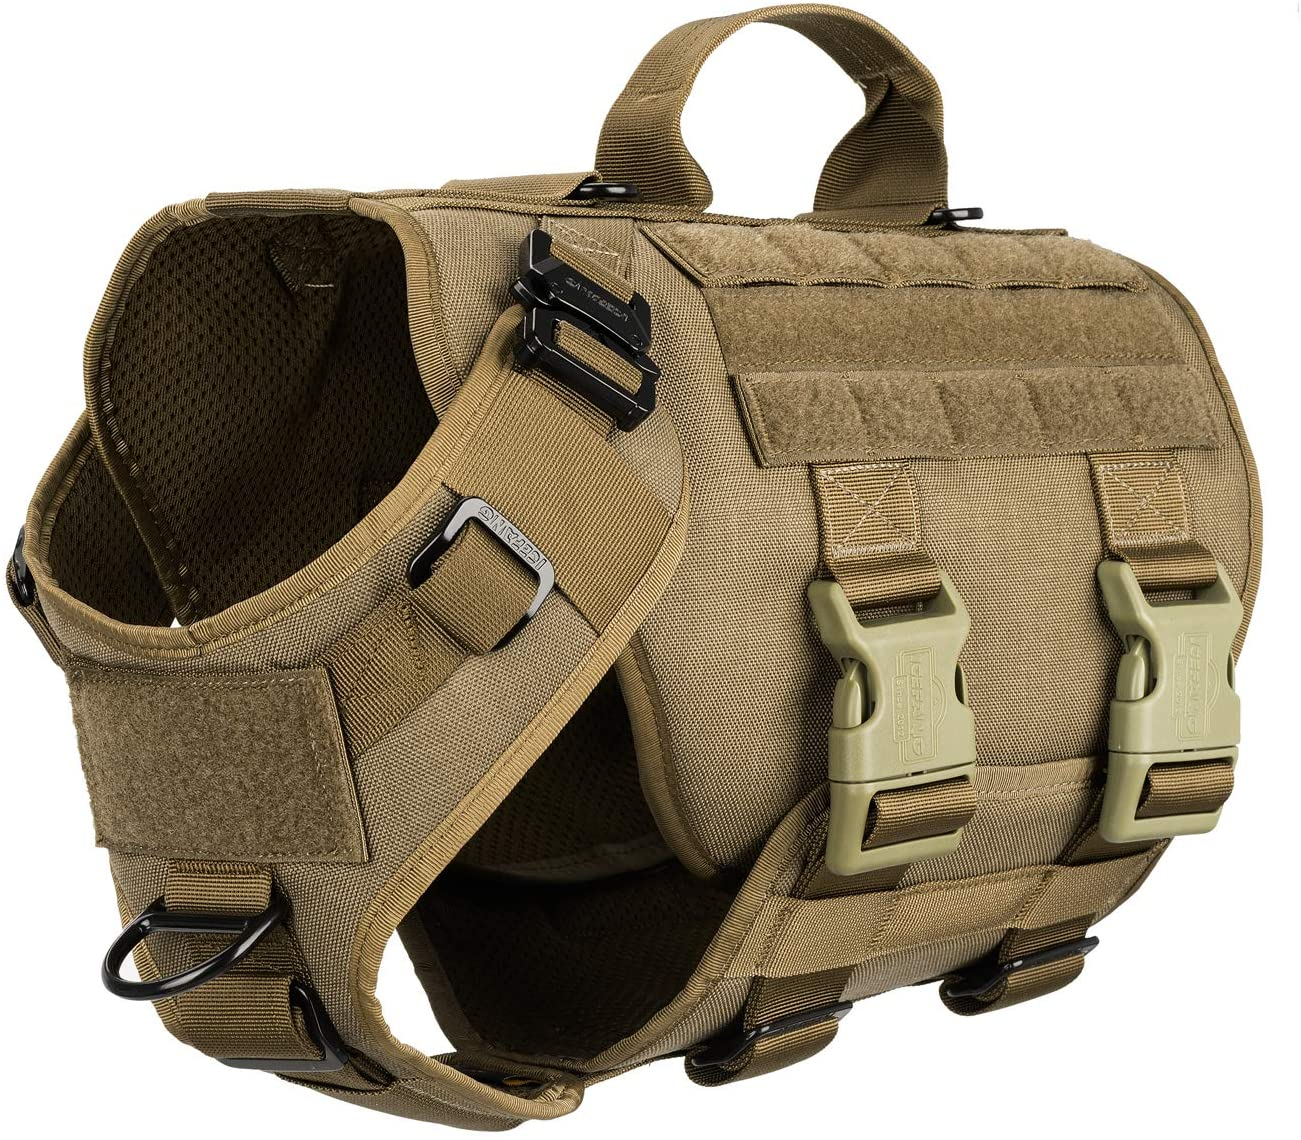 ICEFANG Tactical Dog Operation Harness Molle Buckle 40% OFF Cheap Sale Max 72% OFF with 6X